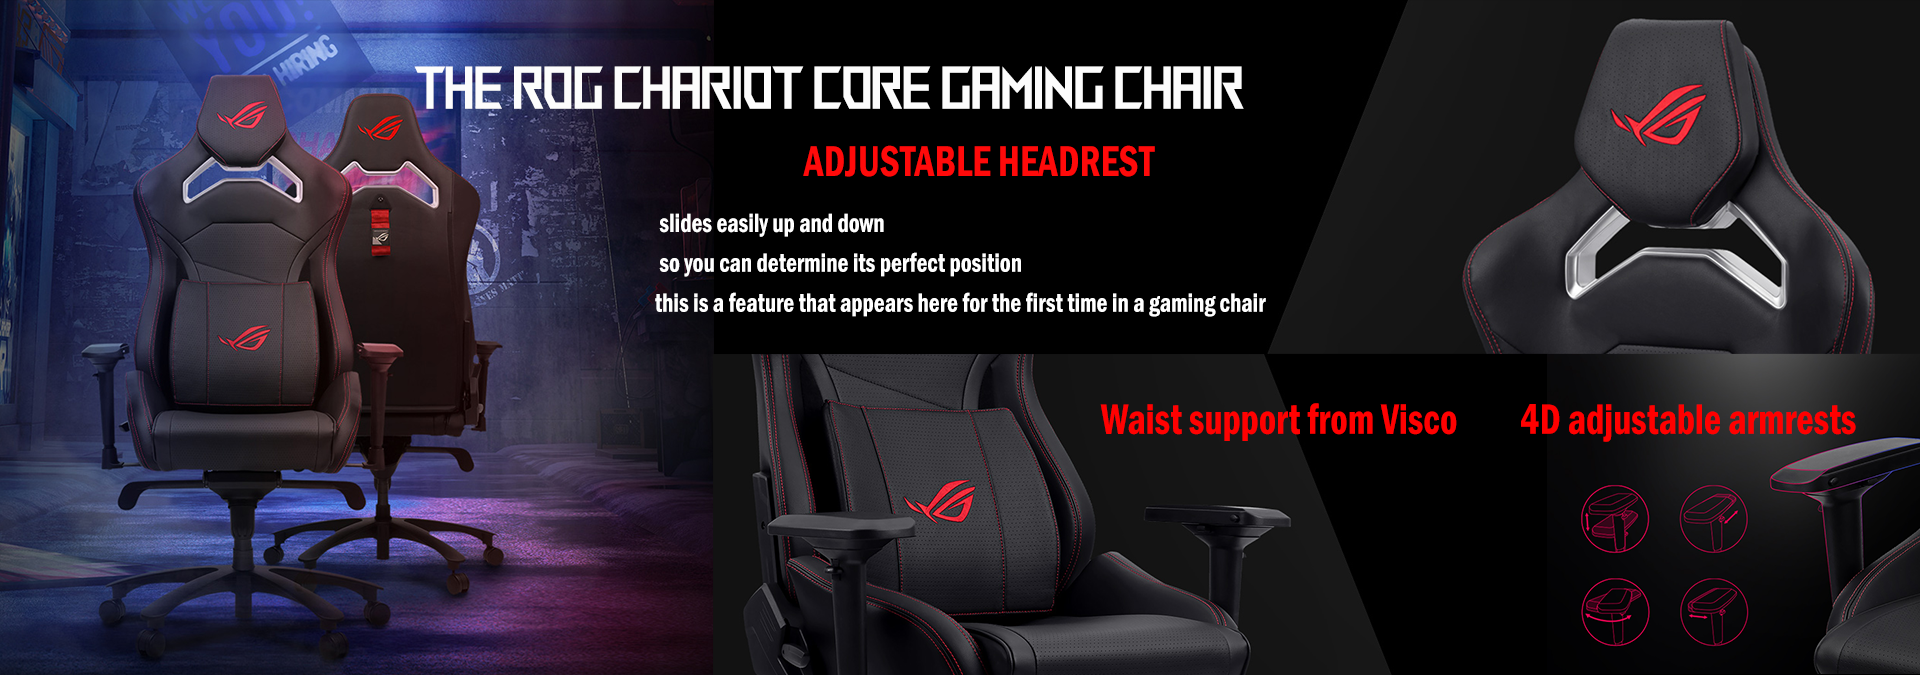 Rog Chariot Core Banner